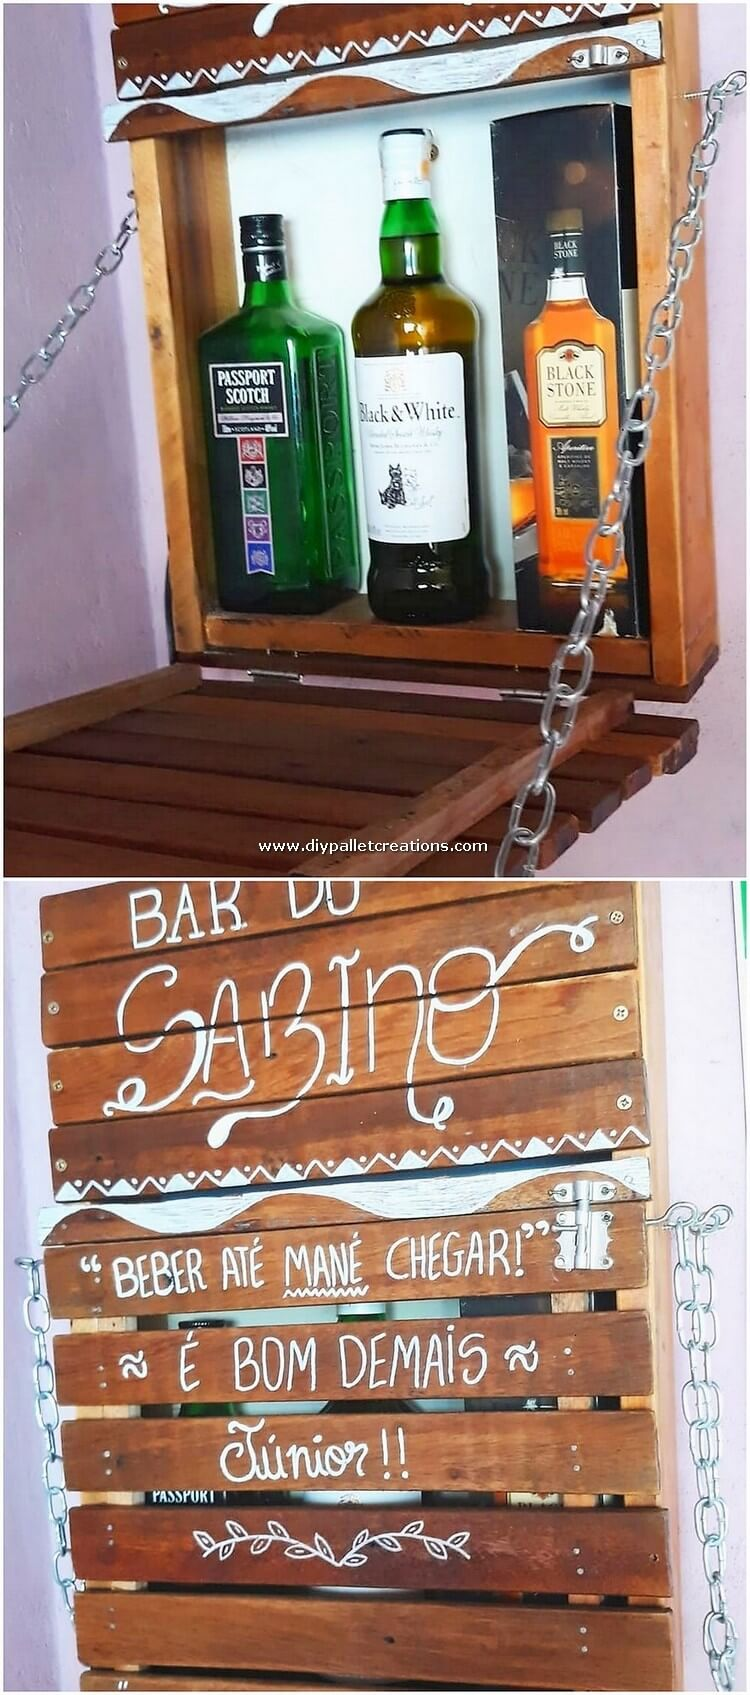 Magnificent Diy Projects With Shipping Pallets Diy Pallet